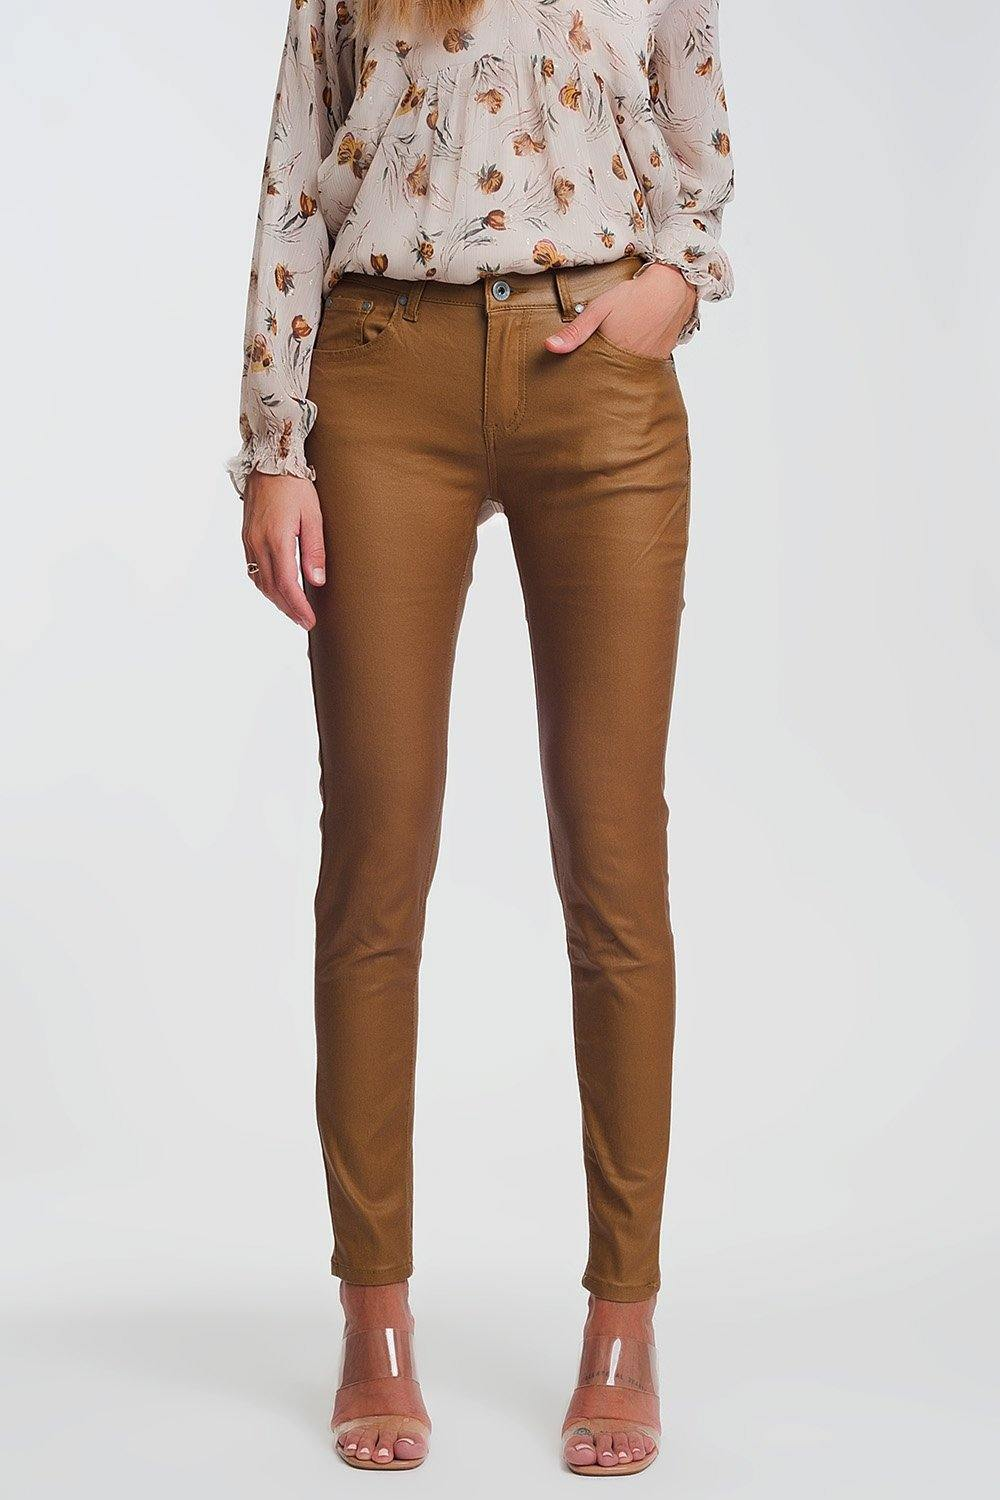 Q2 coated skinny pants in camel